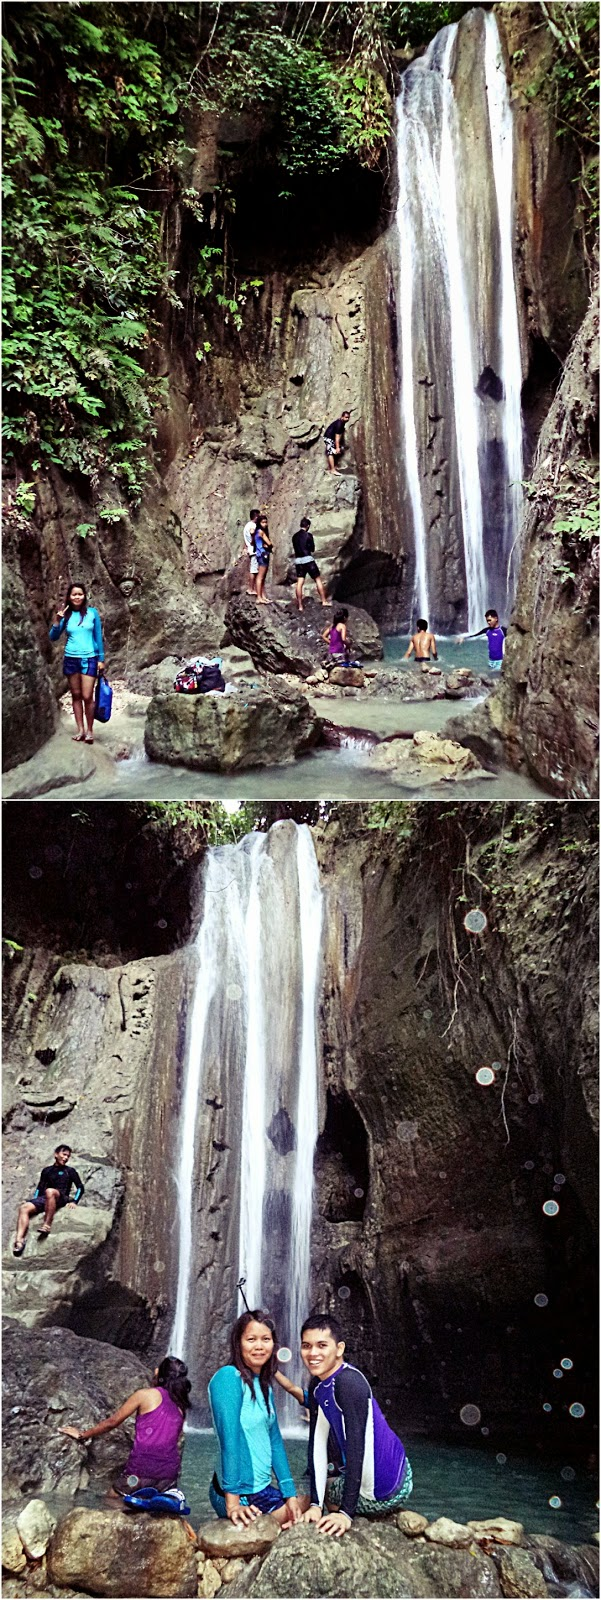 Triple Drop Falls, Binalayan Falls, Samboan, Cebu